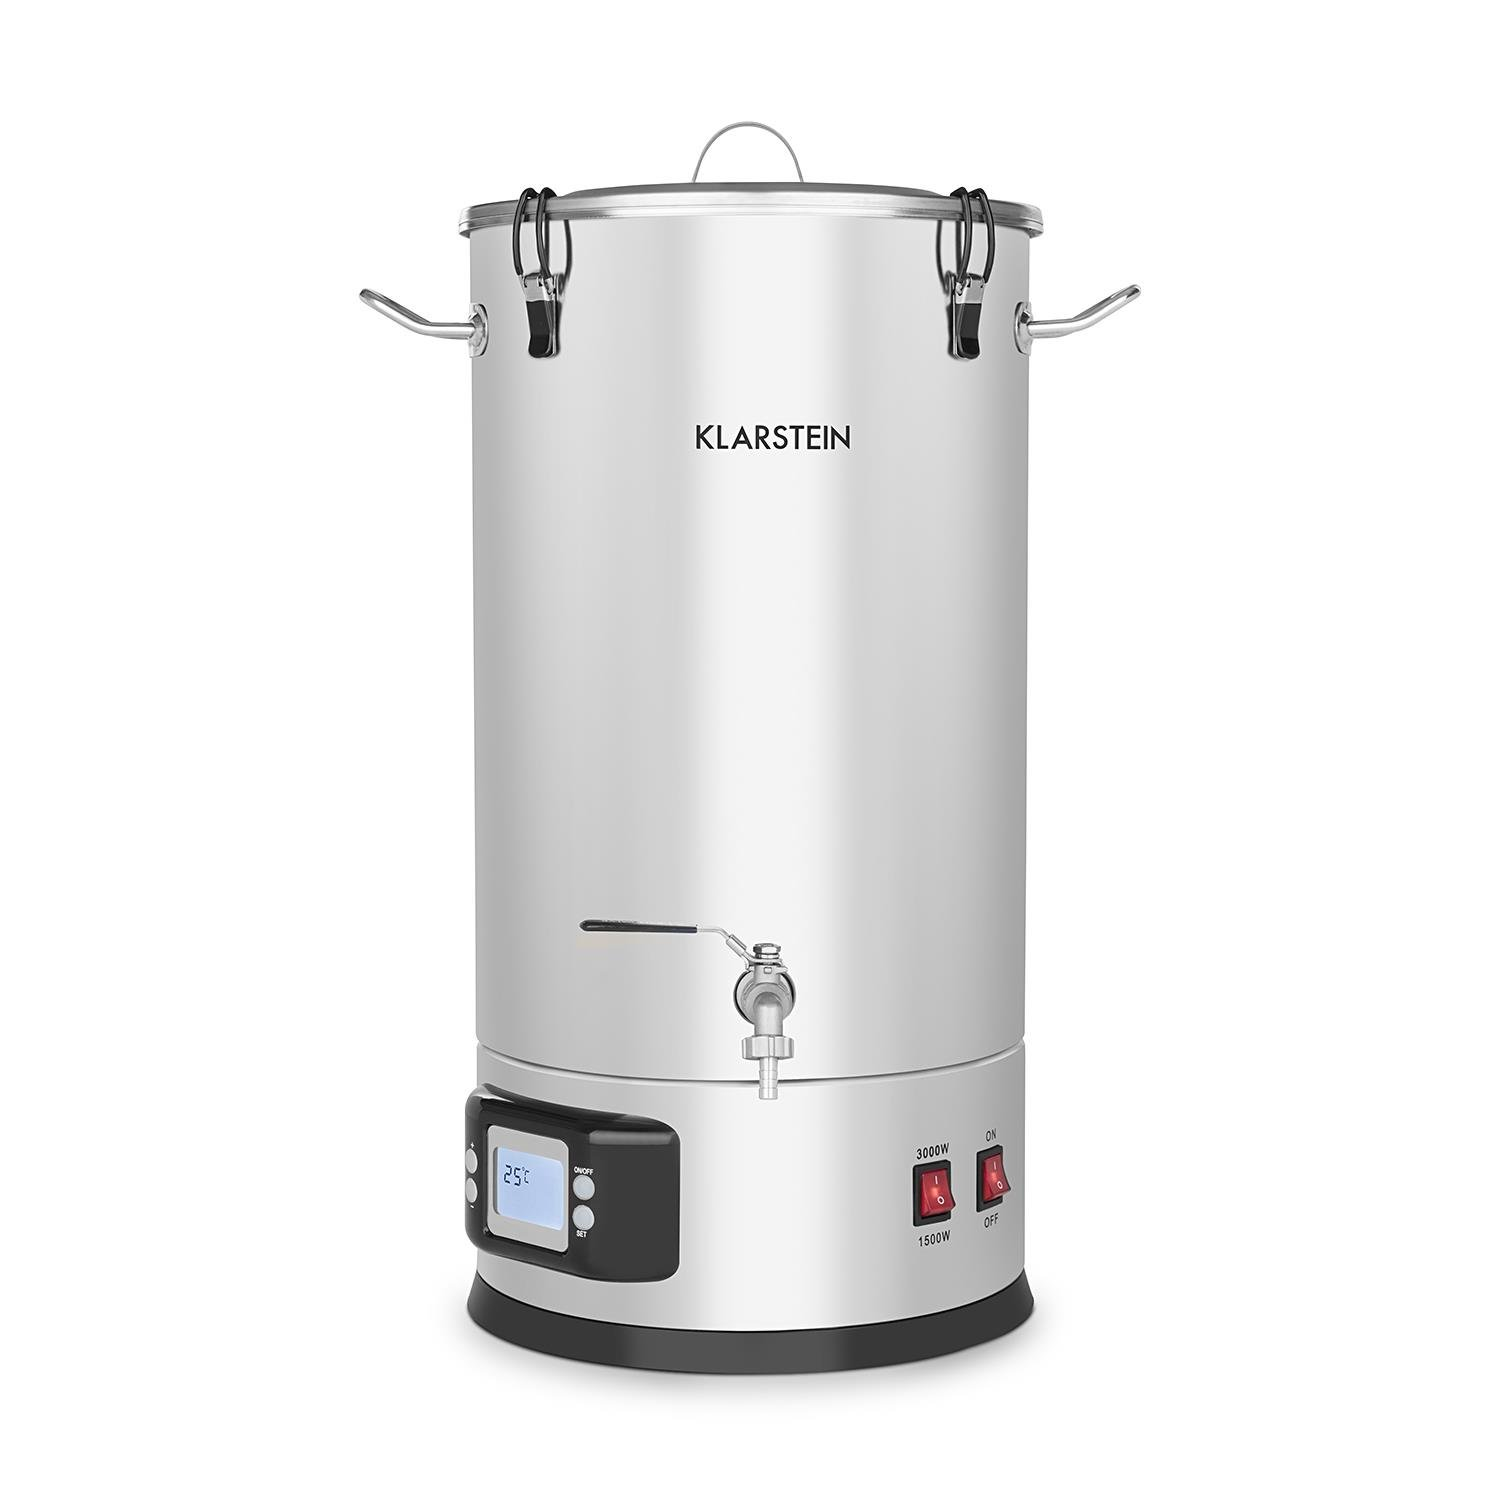 Klarstein Maischfest Mash Kettle - Mash Tank, 5 Pieces, 1500/3000W, 25 litres, LCD Touch, Hygienic, Easy Cleaning, Even Temperature Distribution, Stainless Steel, Silver